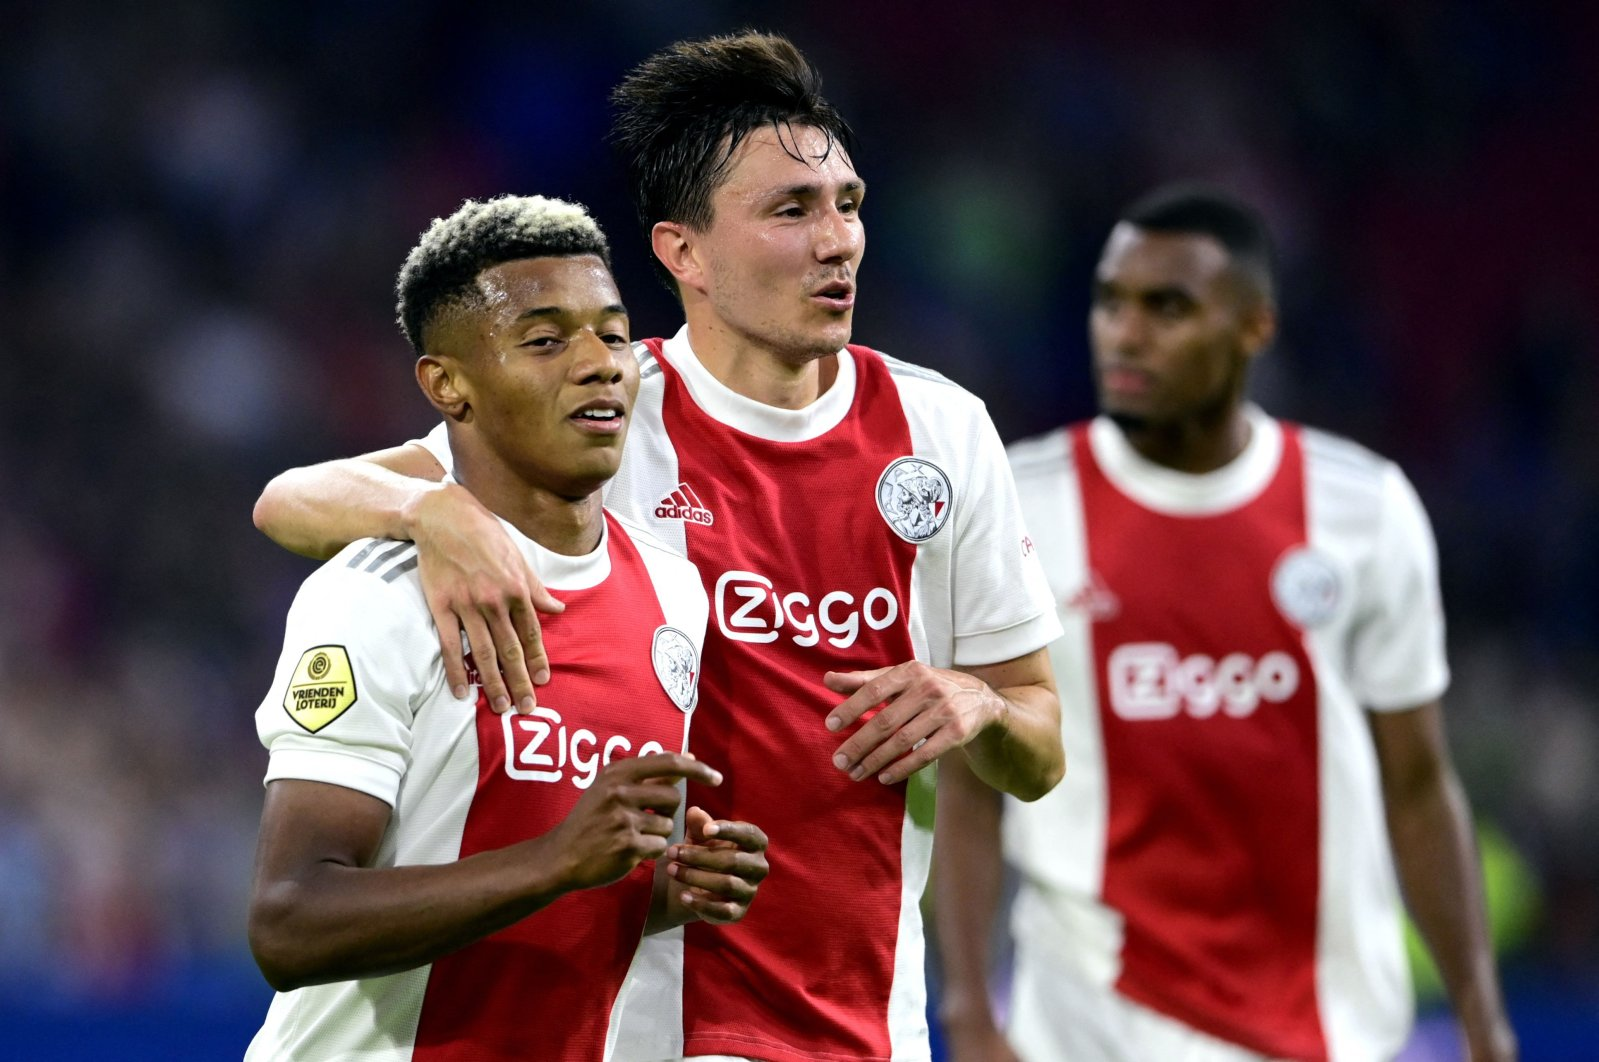 Ajax' Brazilian forward David Neres (L) and Dutch forward Steven Berghuis celebrate their fourth goal during the Dutch Eredivisie football match between Ajax Amsterdam and SC Cambuur at the Johan Cruijff ArenA in Amsterdam, Netherlands, Sept. 18, 2021. (AFP Photo)